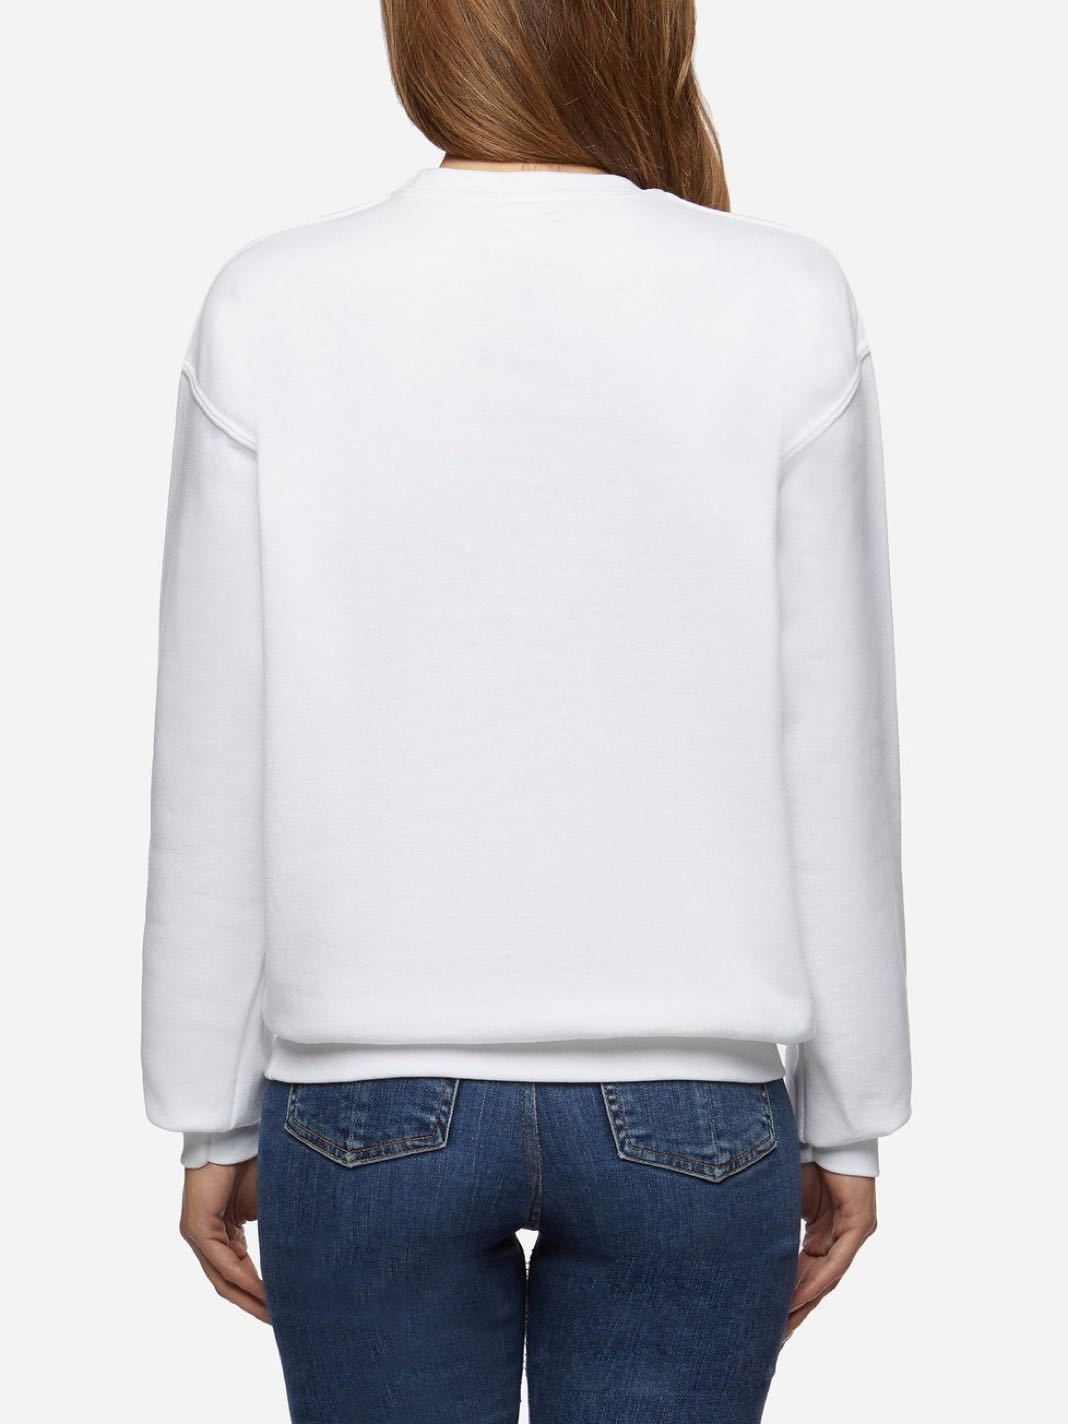 Boobs Cotton Sweatshirt White - The Bobby Boga